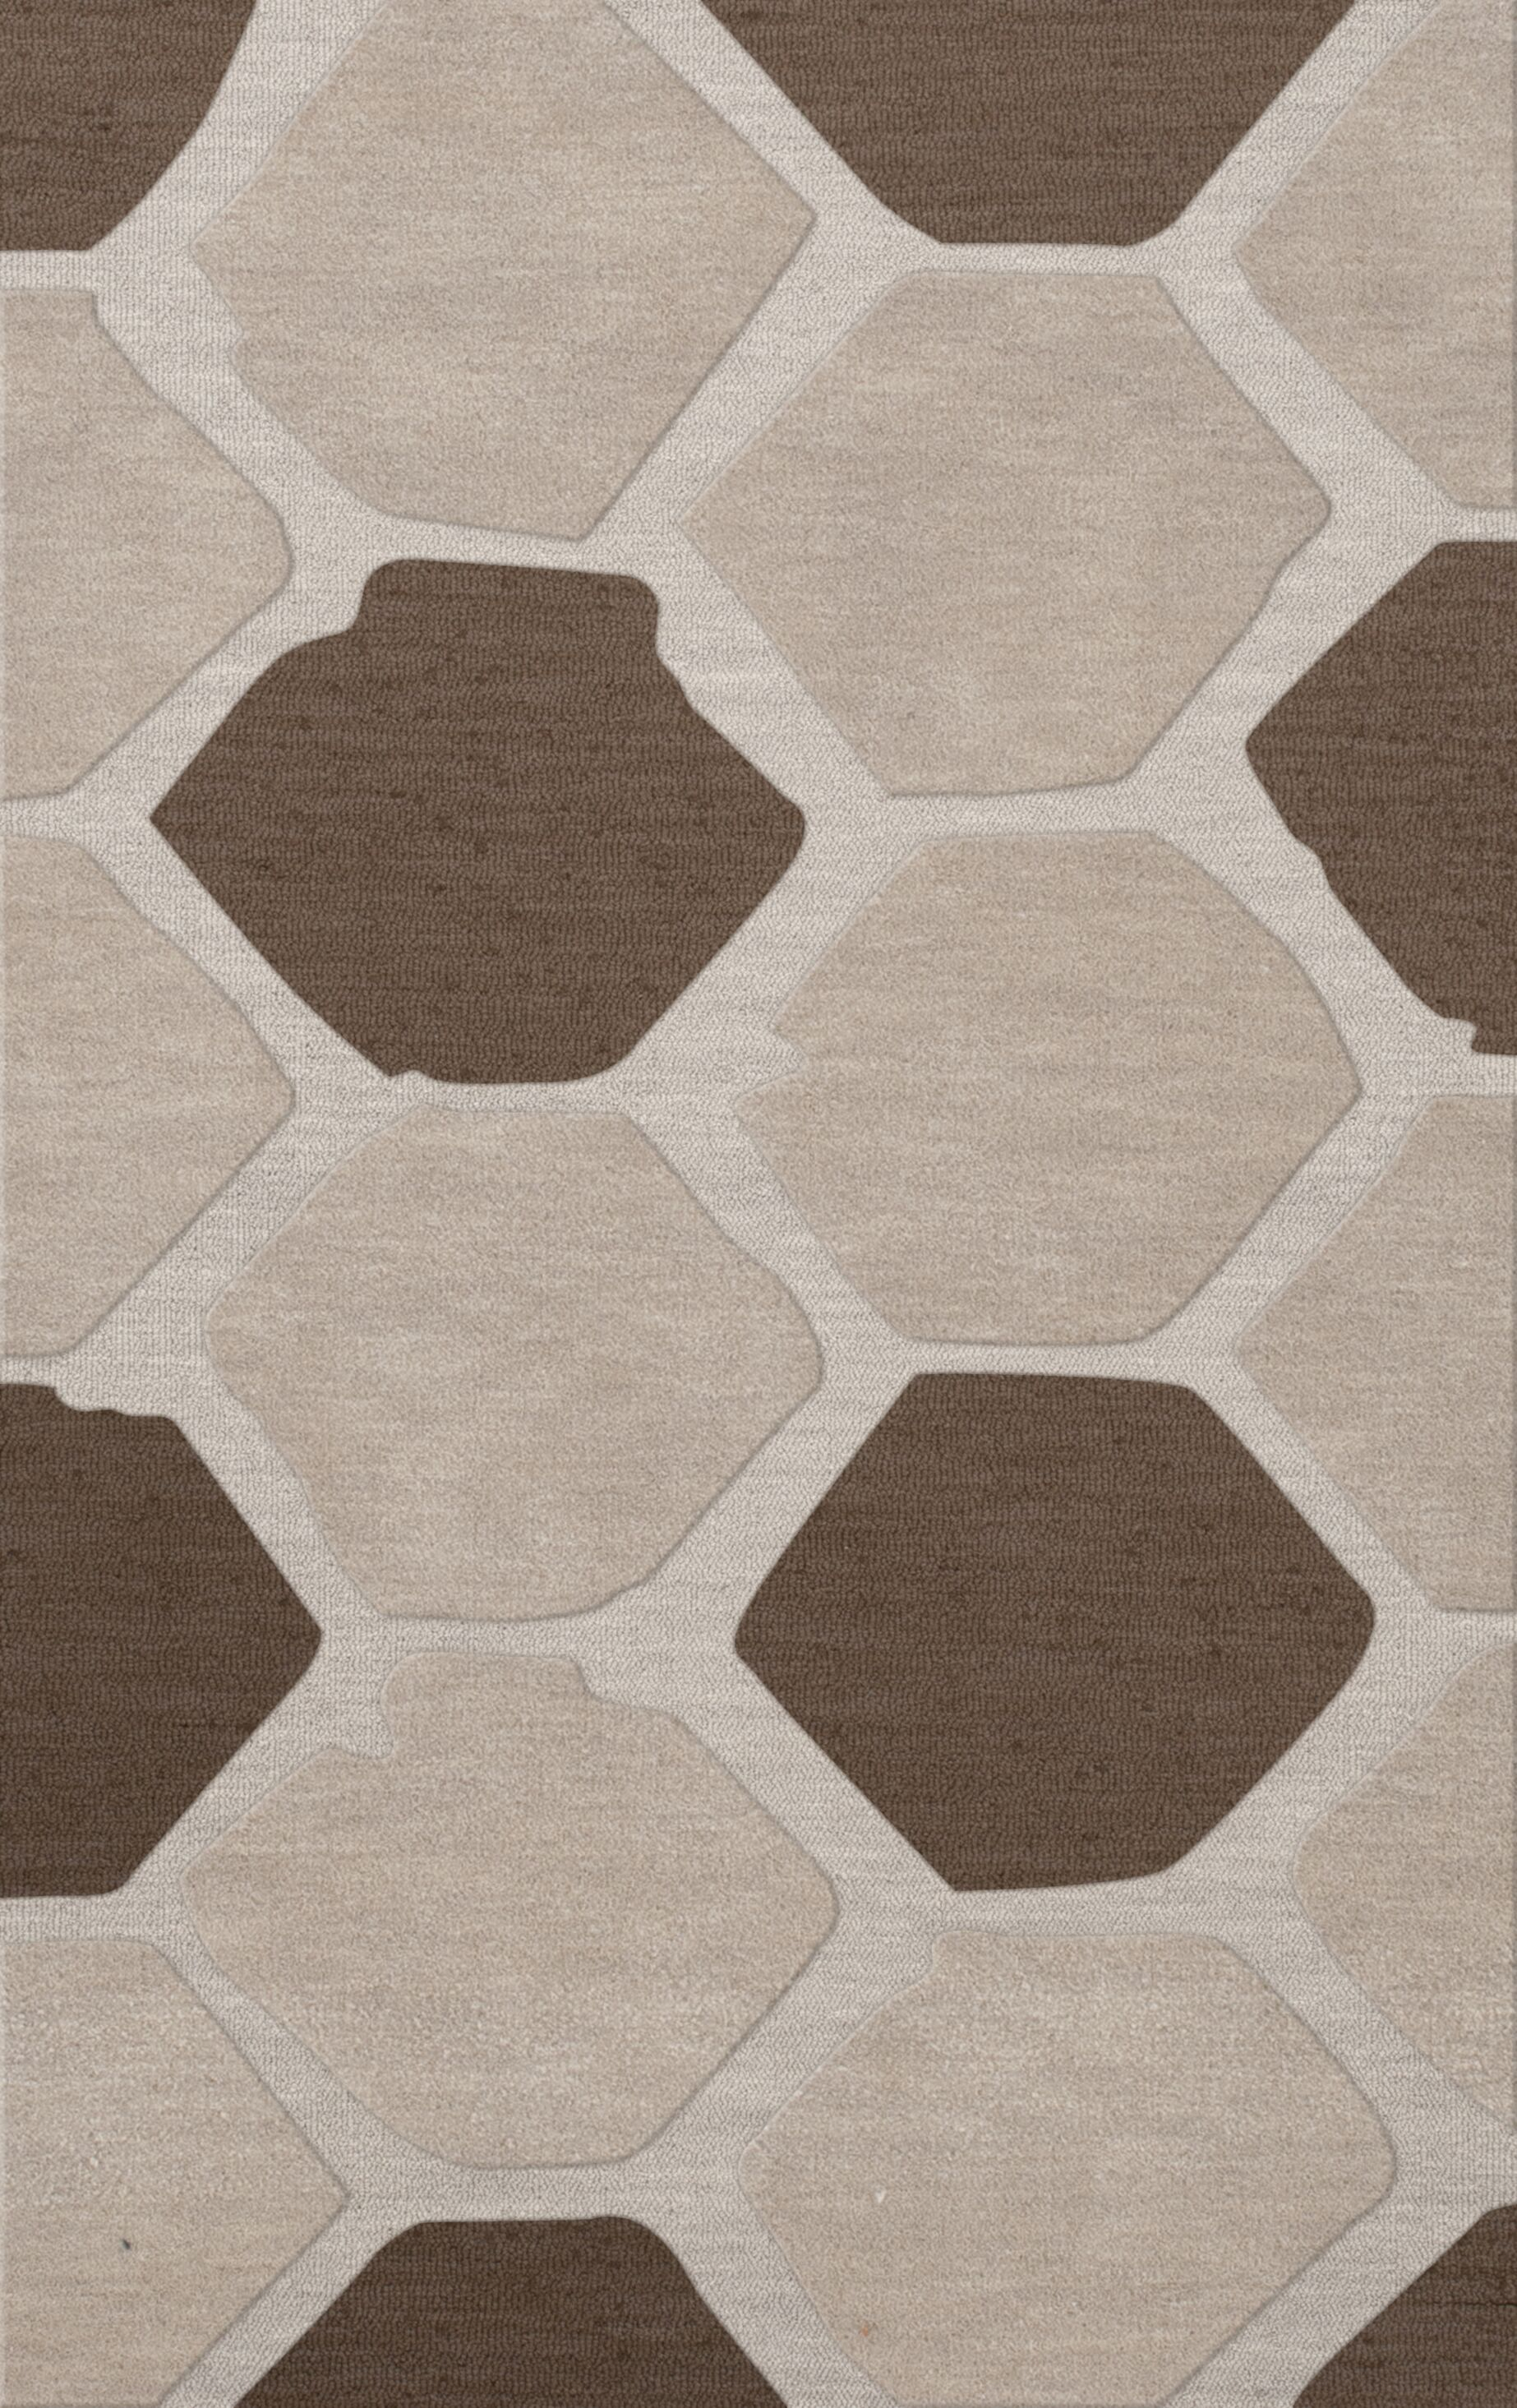 Dunson Wool Croissant Area Rug Rug Size: Rectangle 12' x 15'